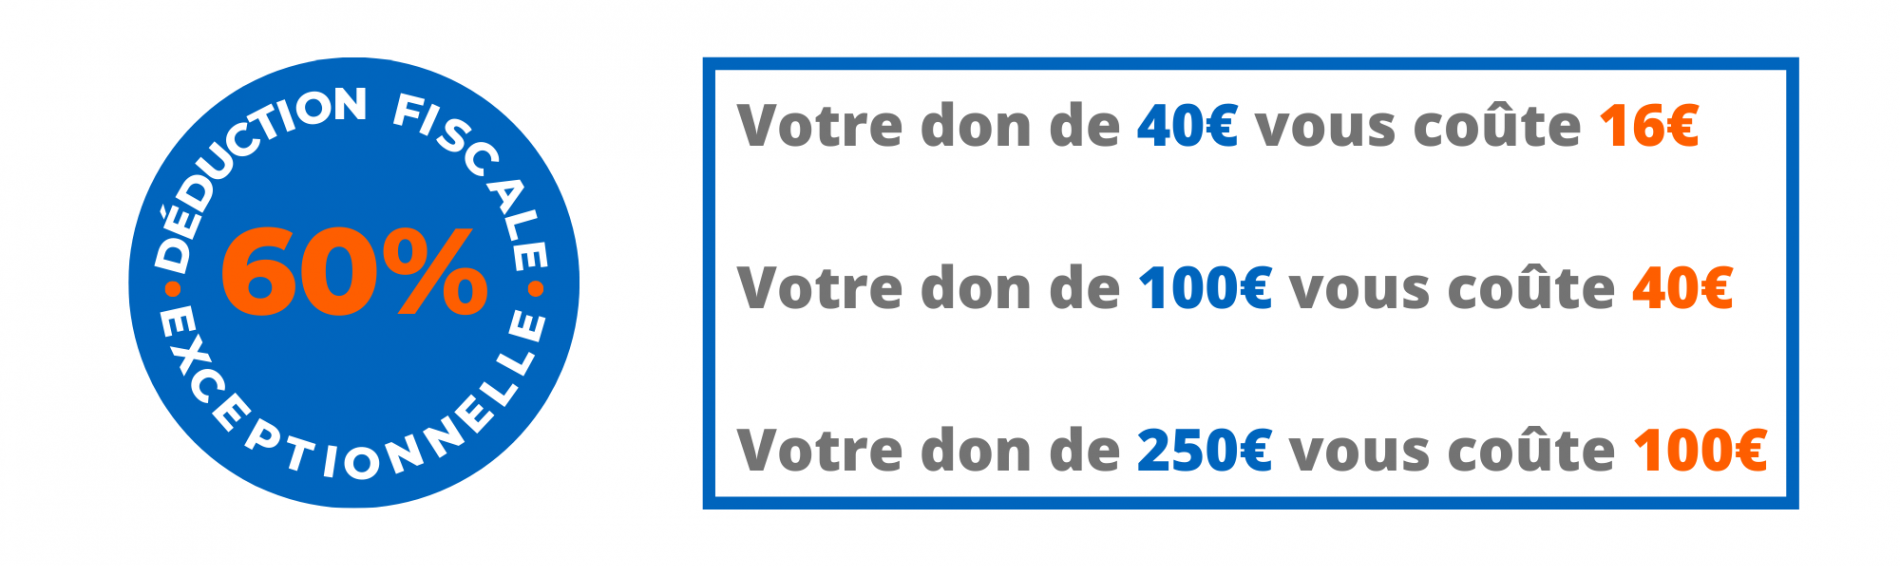 Déduction fiscale exceptionnelle